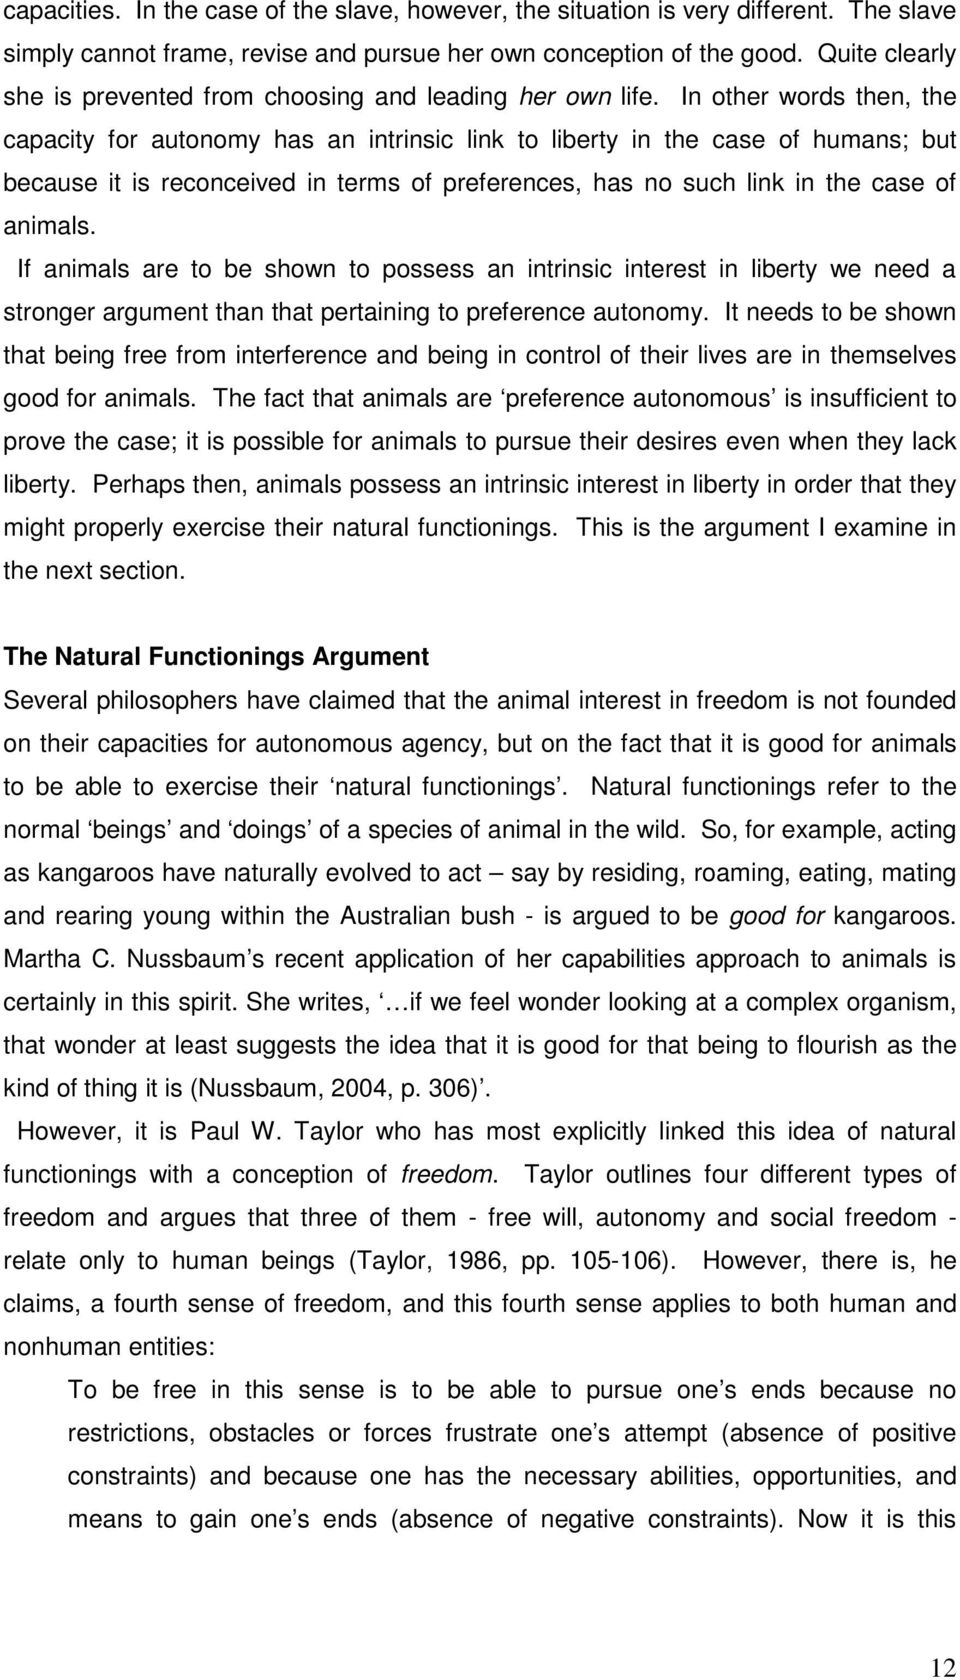 In other words then, the capacity for autonomy has an intrinsic link to liberty in the case of humans; but because it is reconceived in terms of preferences, has no such link in the case of animals.